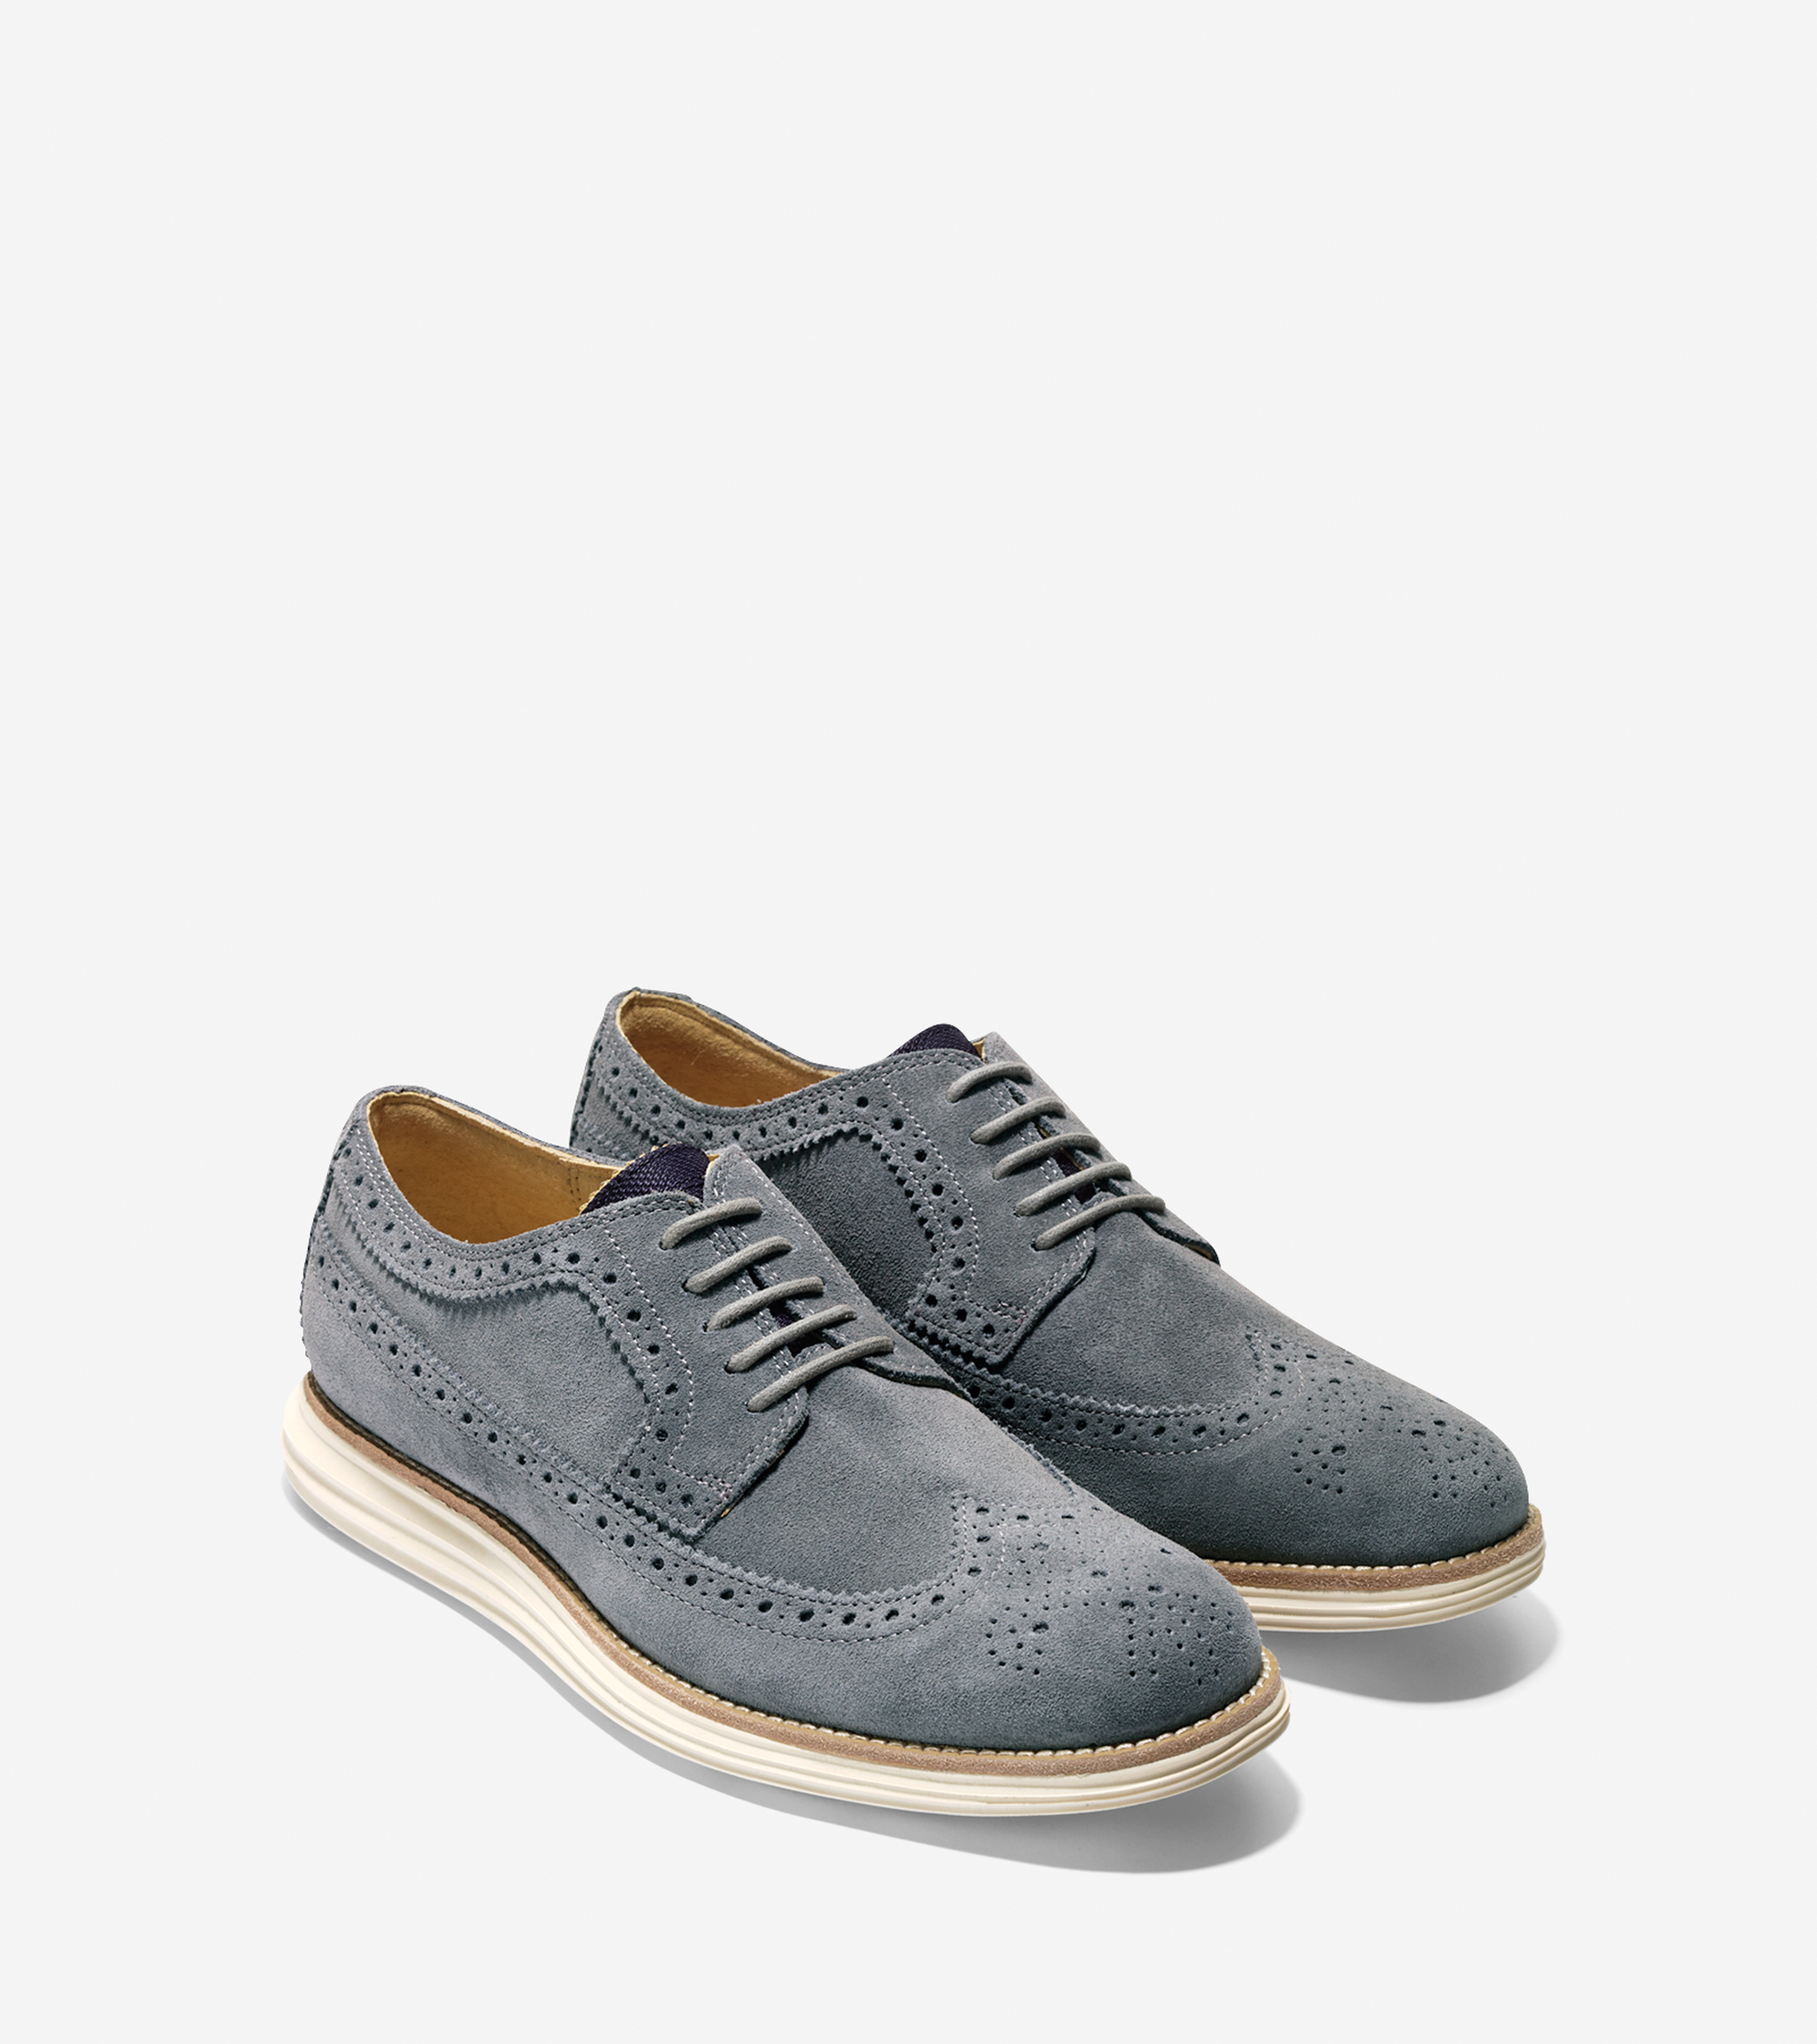 Hudson Bay Men Cole Haan Shoes